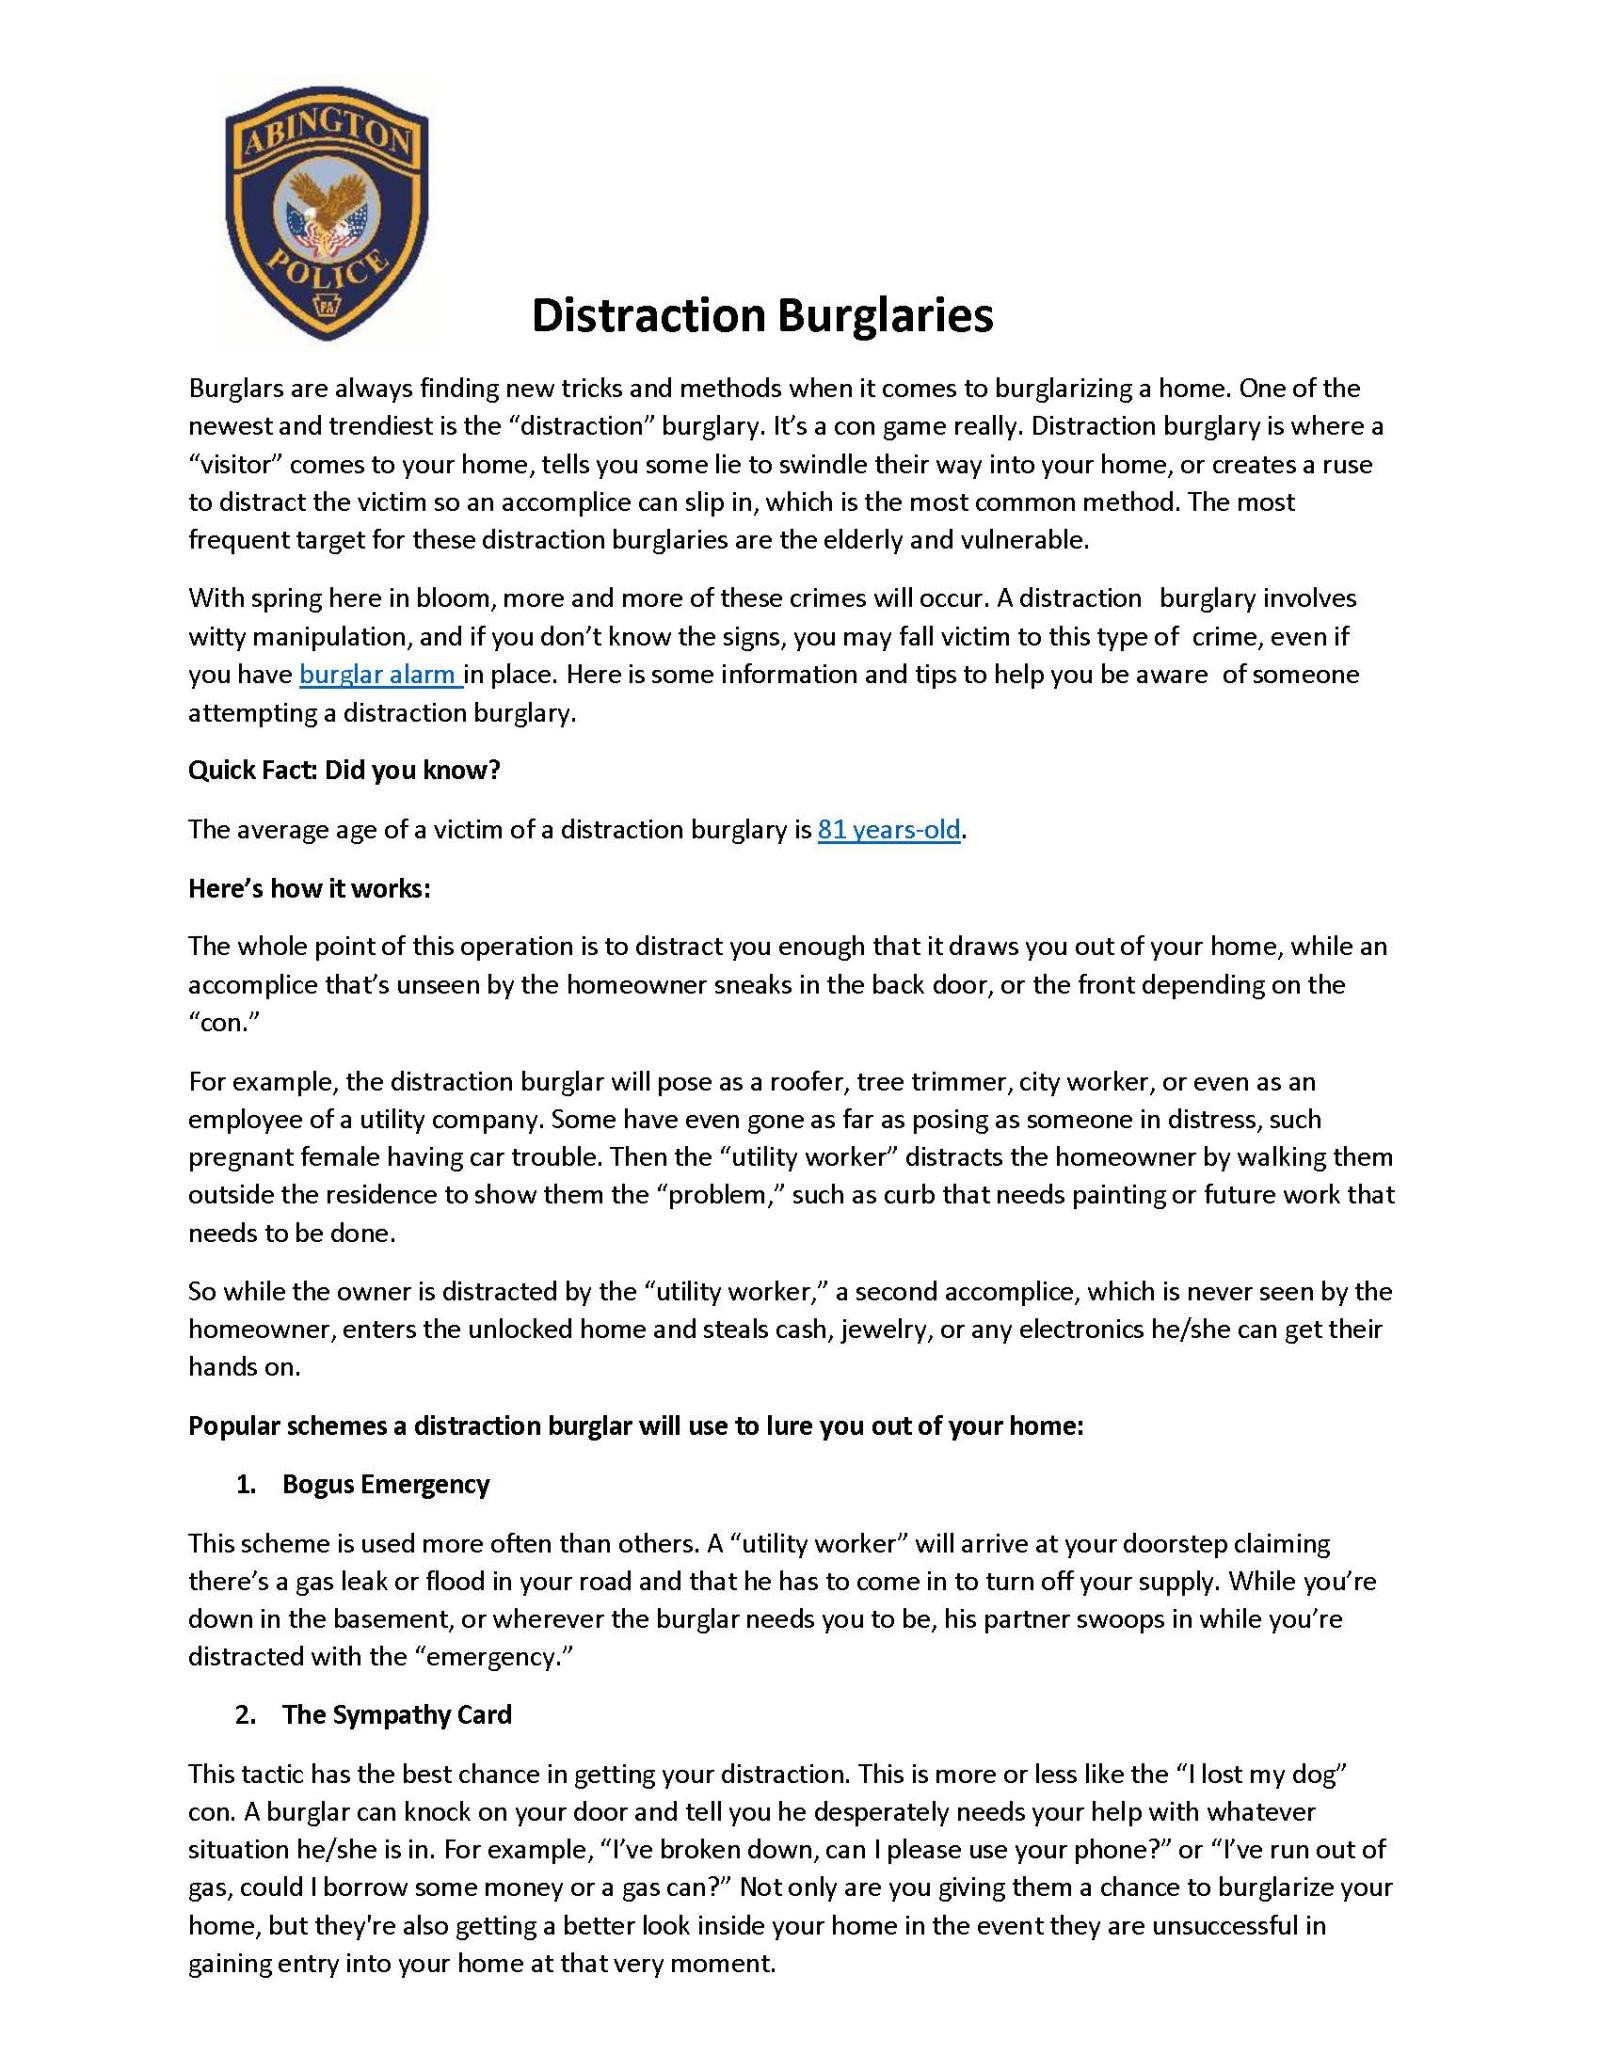 Distraction Burglaries_Page_1